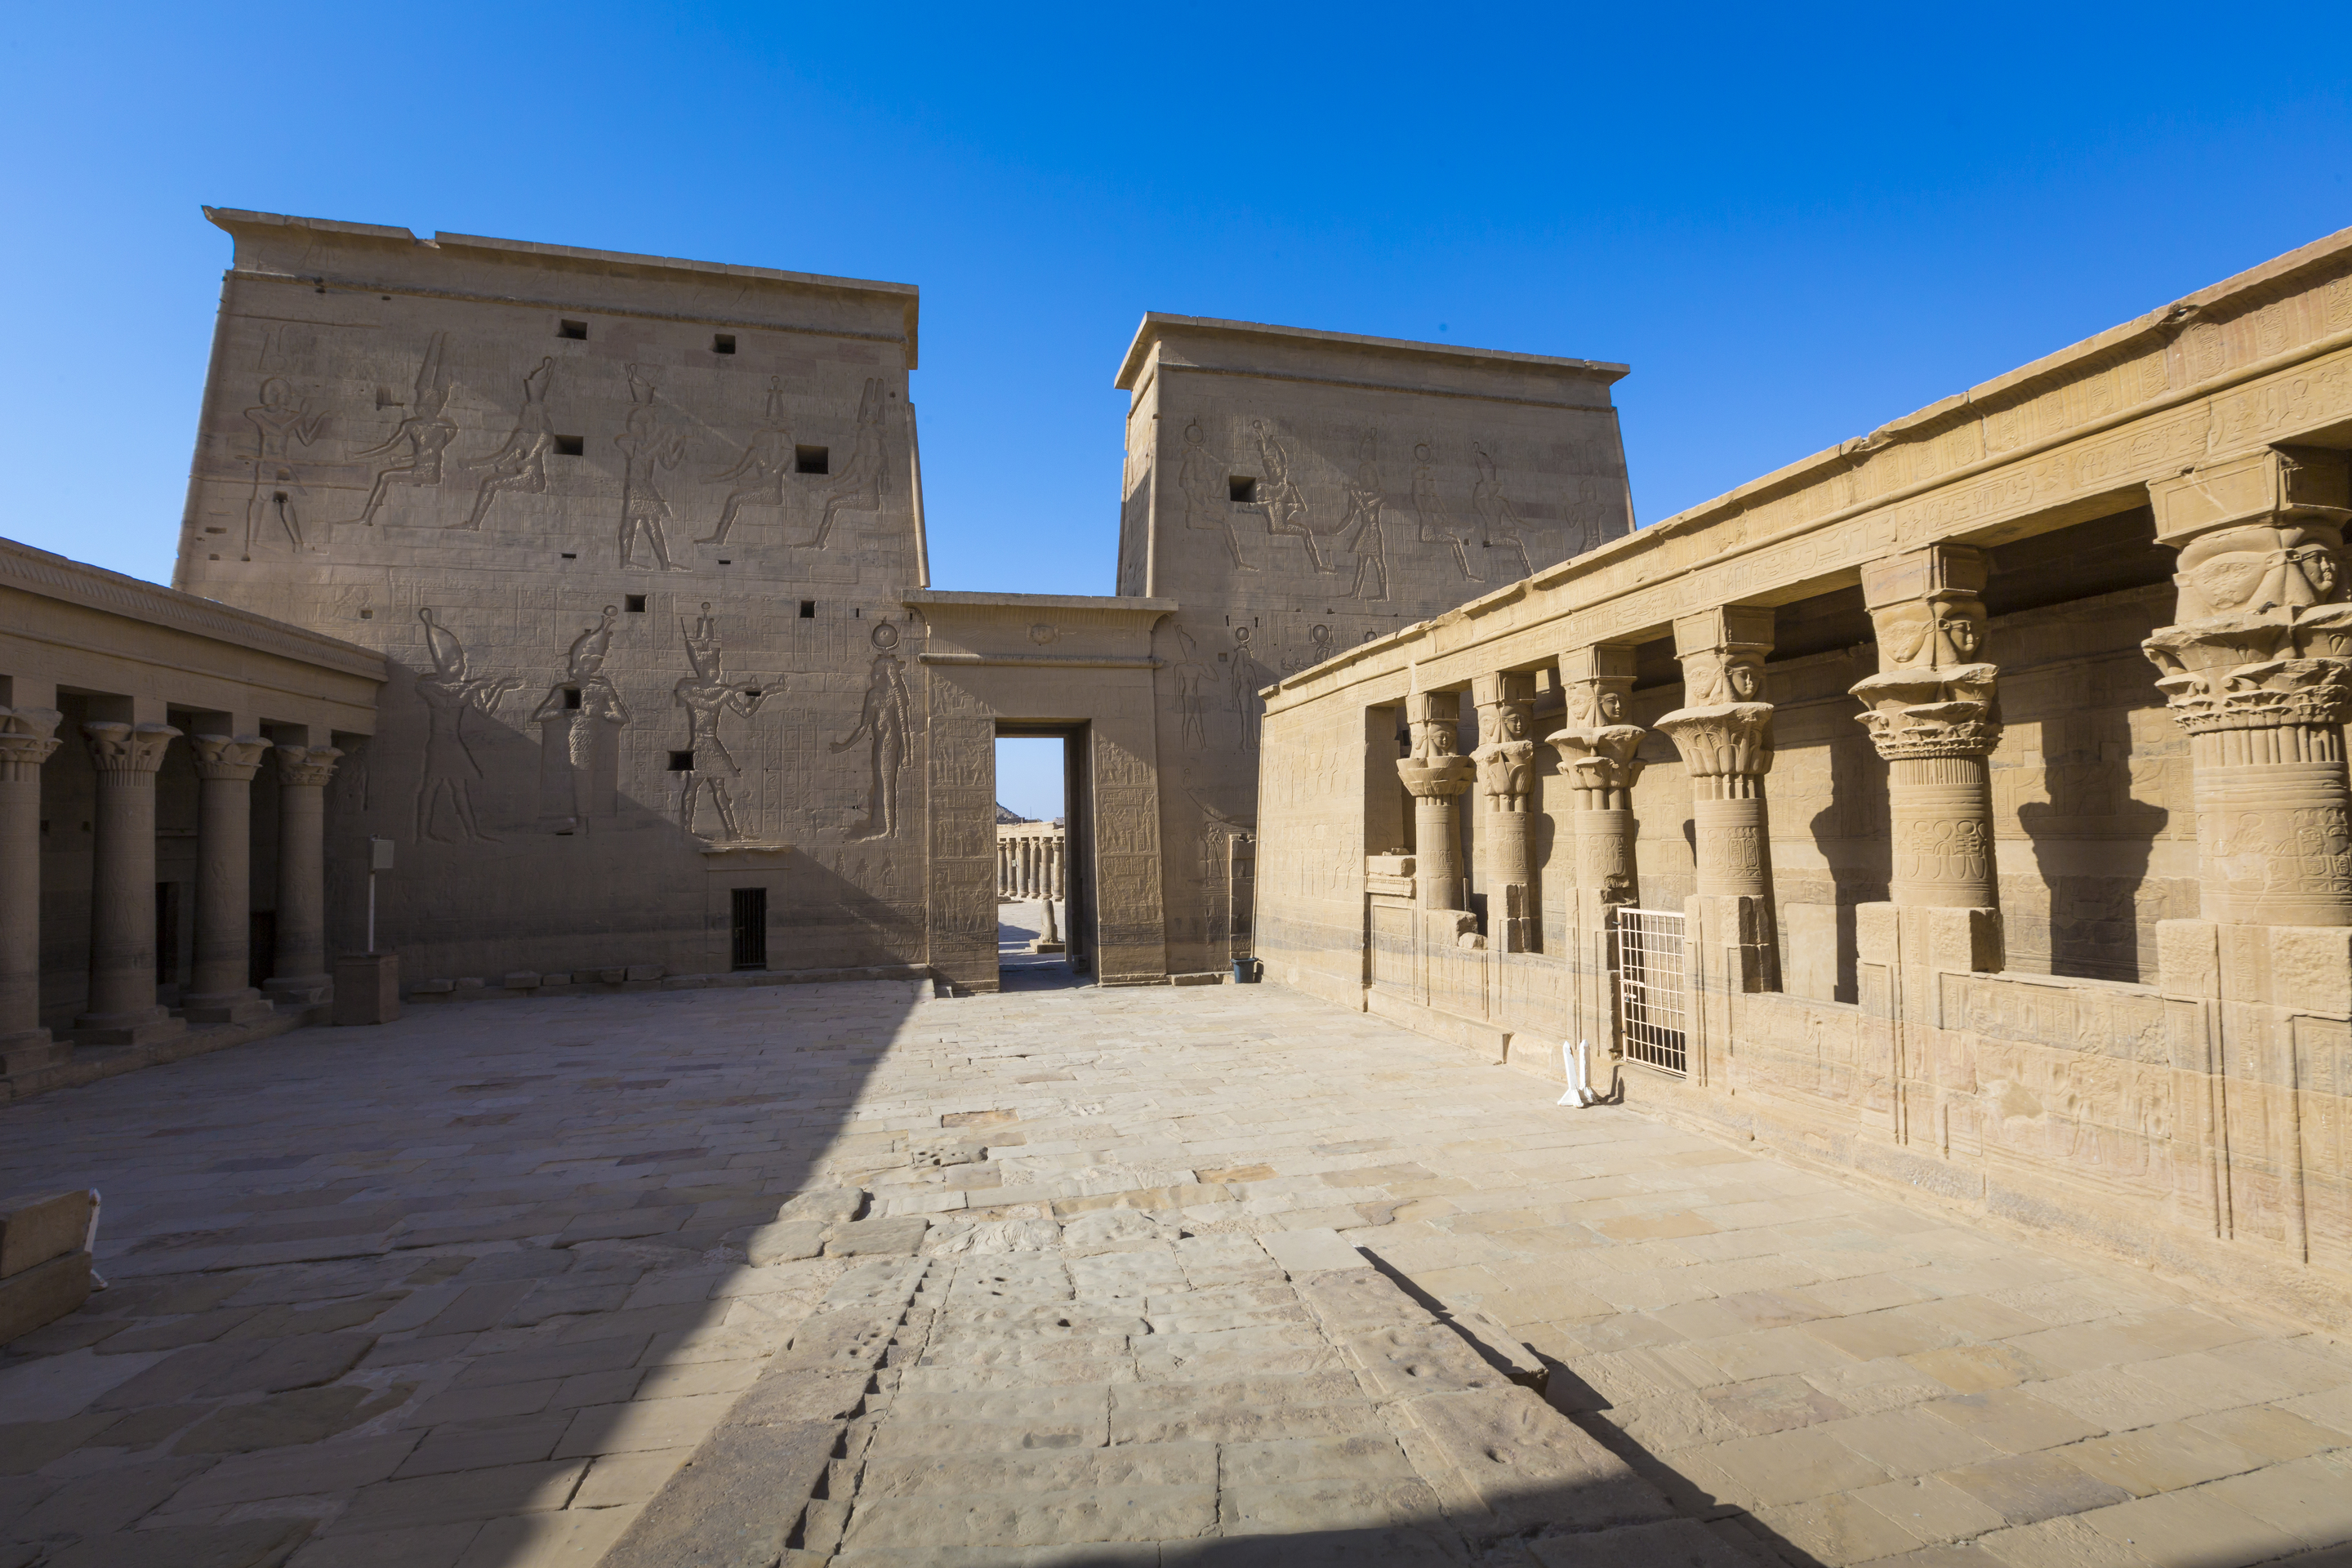 The Philae Temple on Agilkia